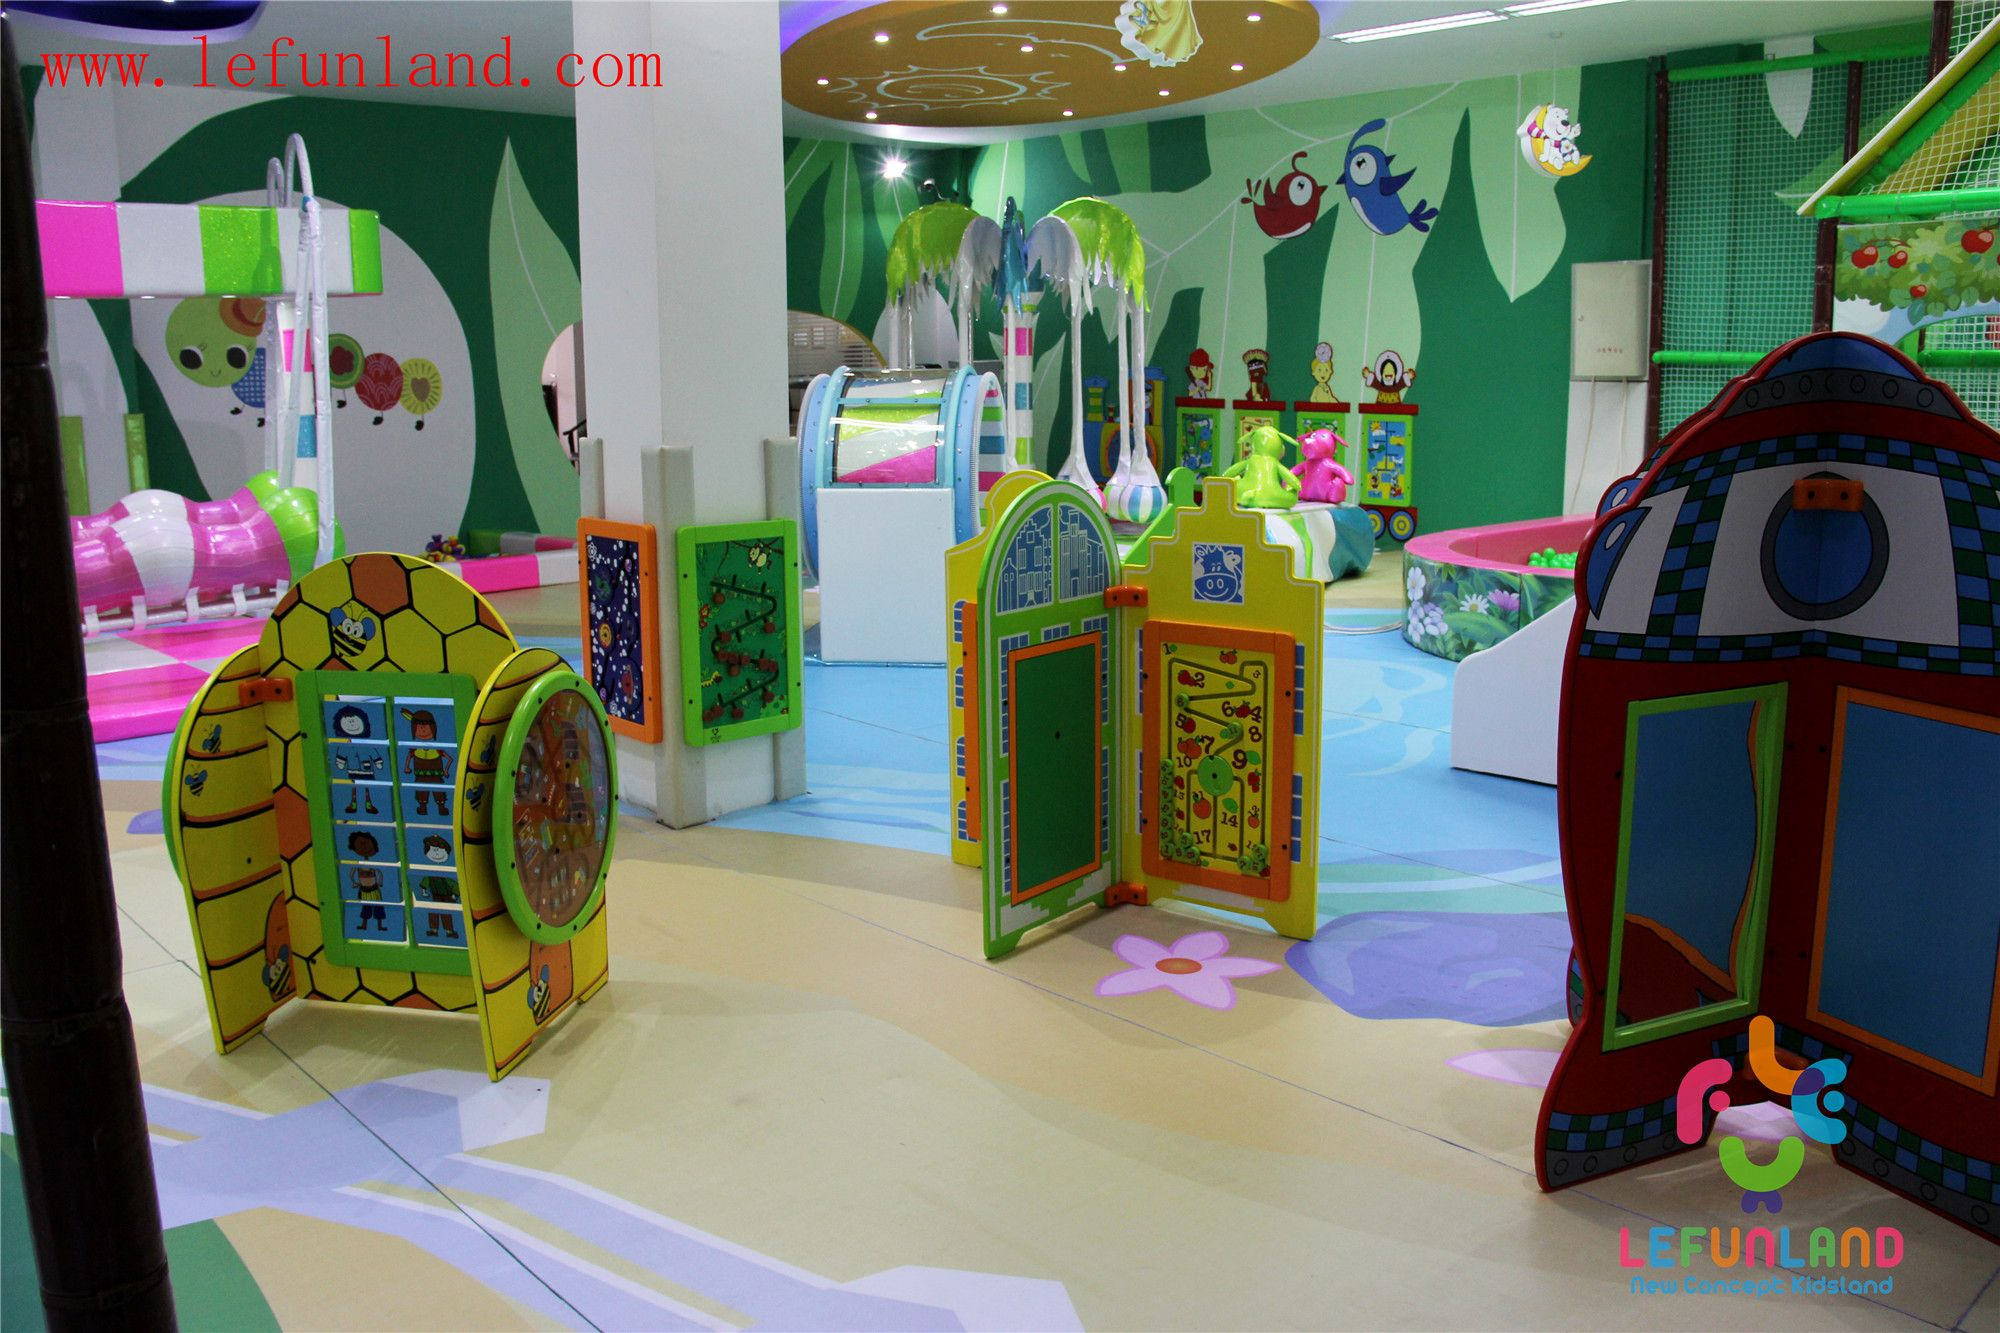 Wwwlefunlandcom Kids Indoor Playground Equipment,Kids Soft Indoor Playground,Jumping